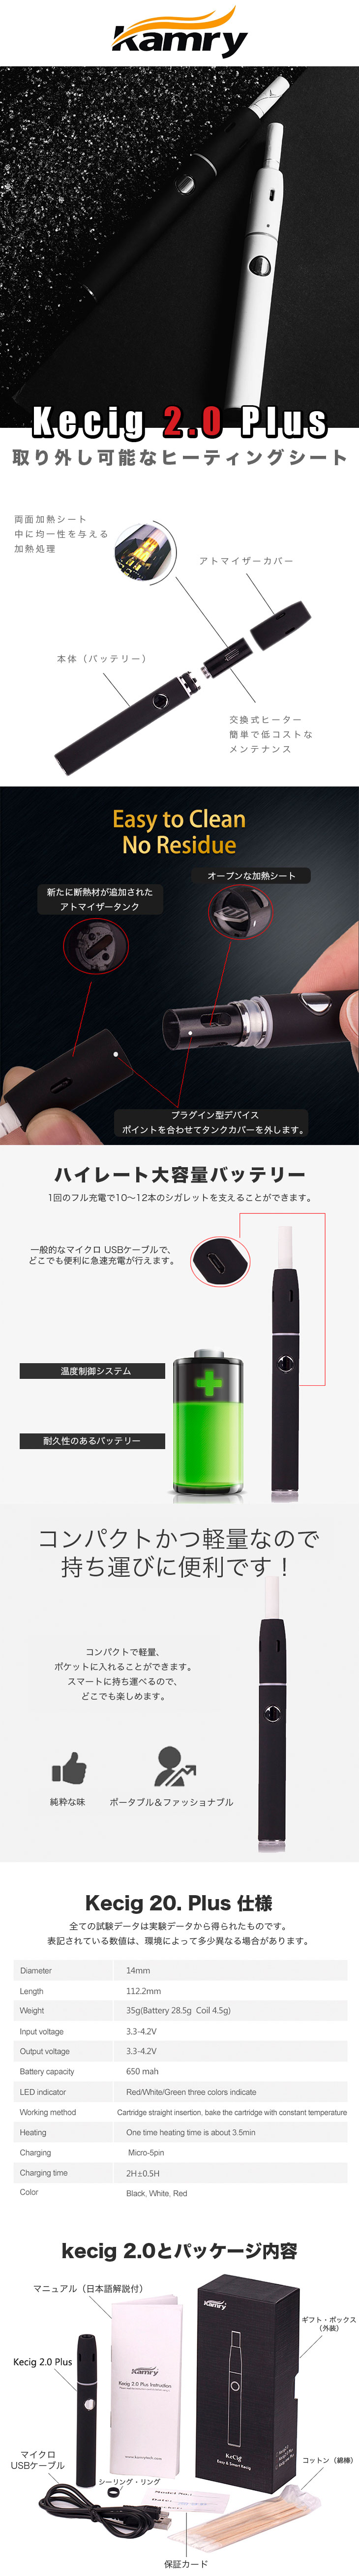 Iqos kecig 2 0 plus for Store layout maker